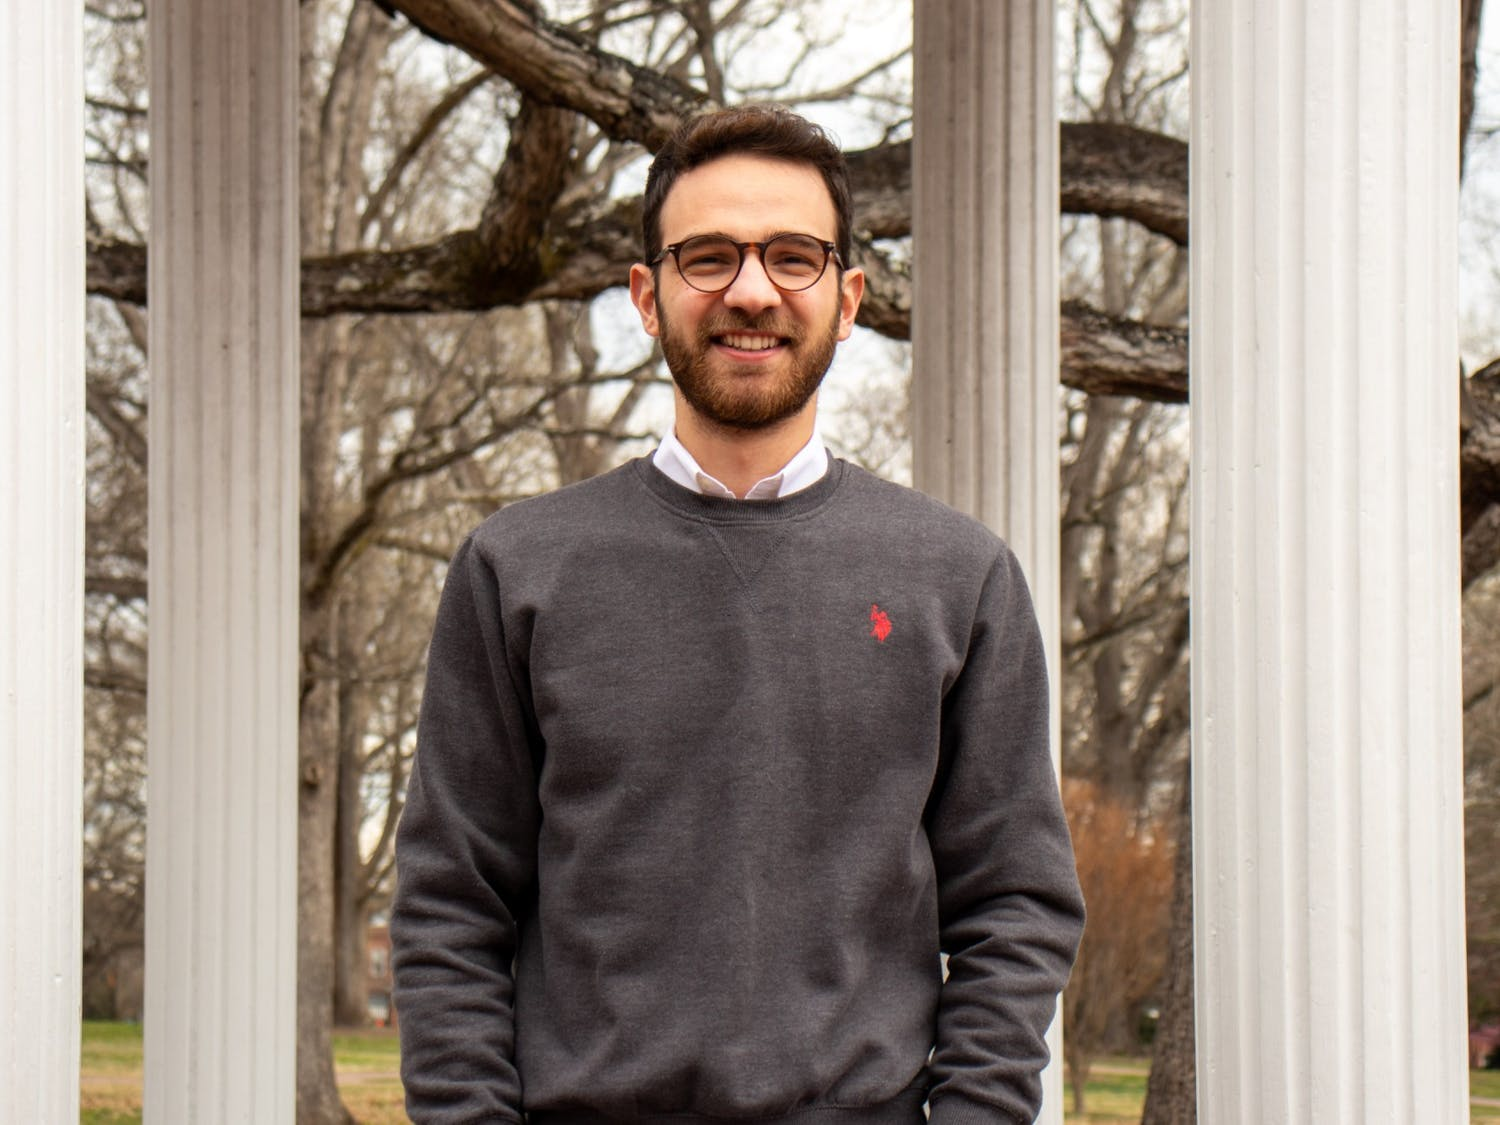 Georgios Kostantinis, vice president of The First-Generation Student Association, poses for a portrait in front of the Old Well on Monday, Mar. 15, 2021.